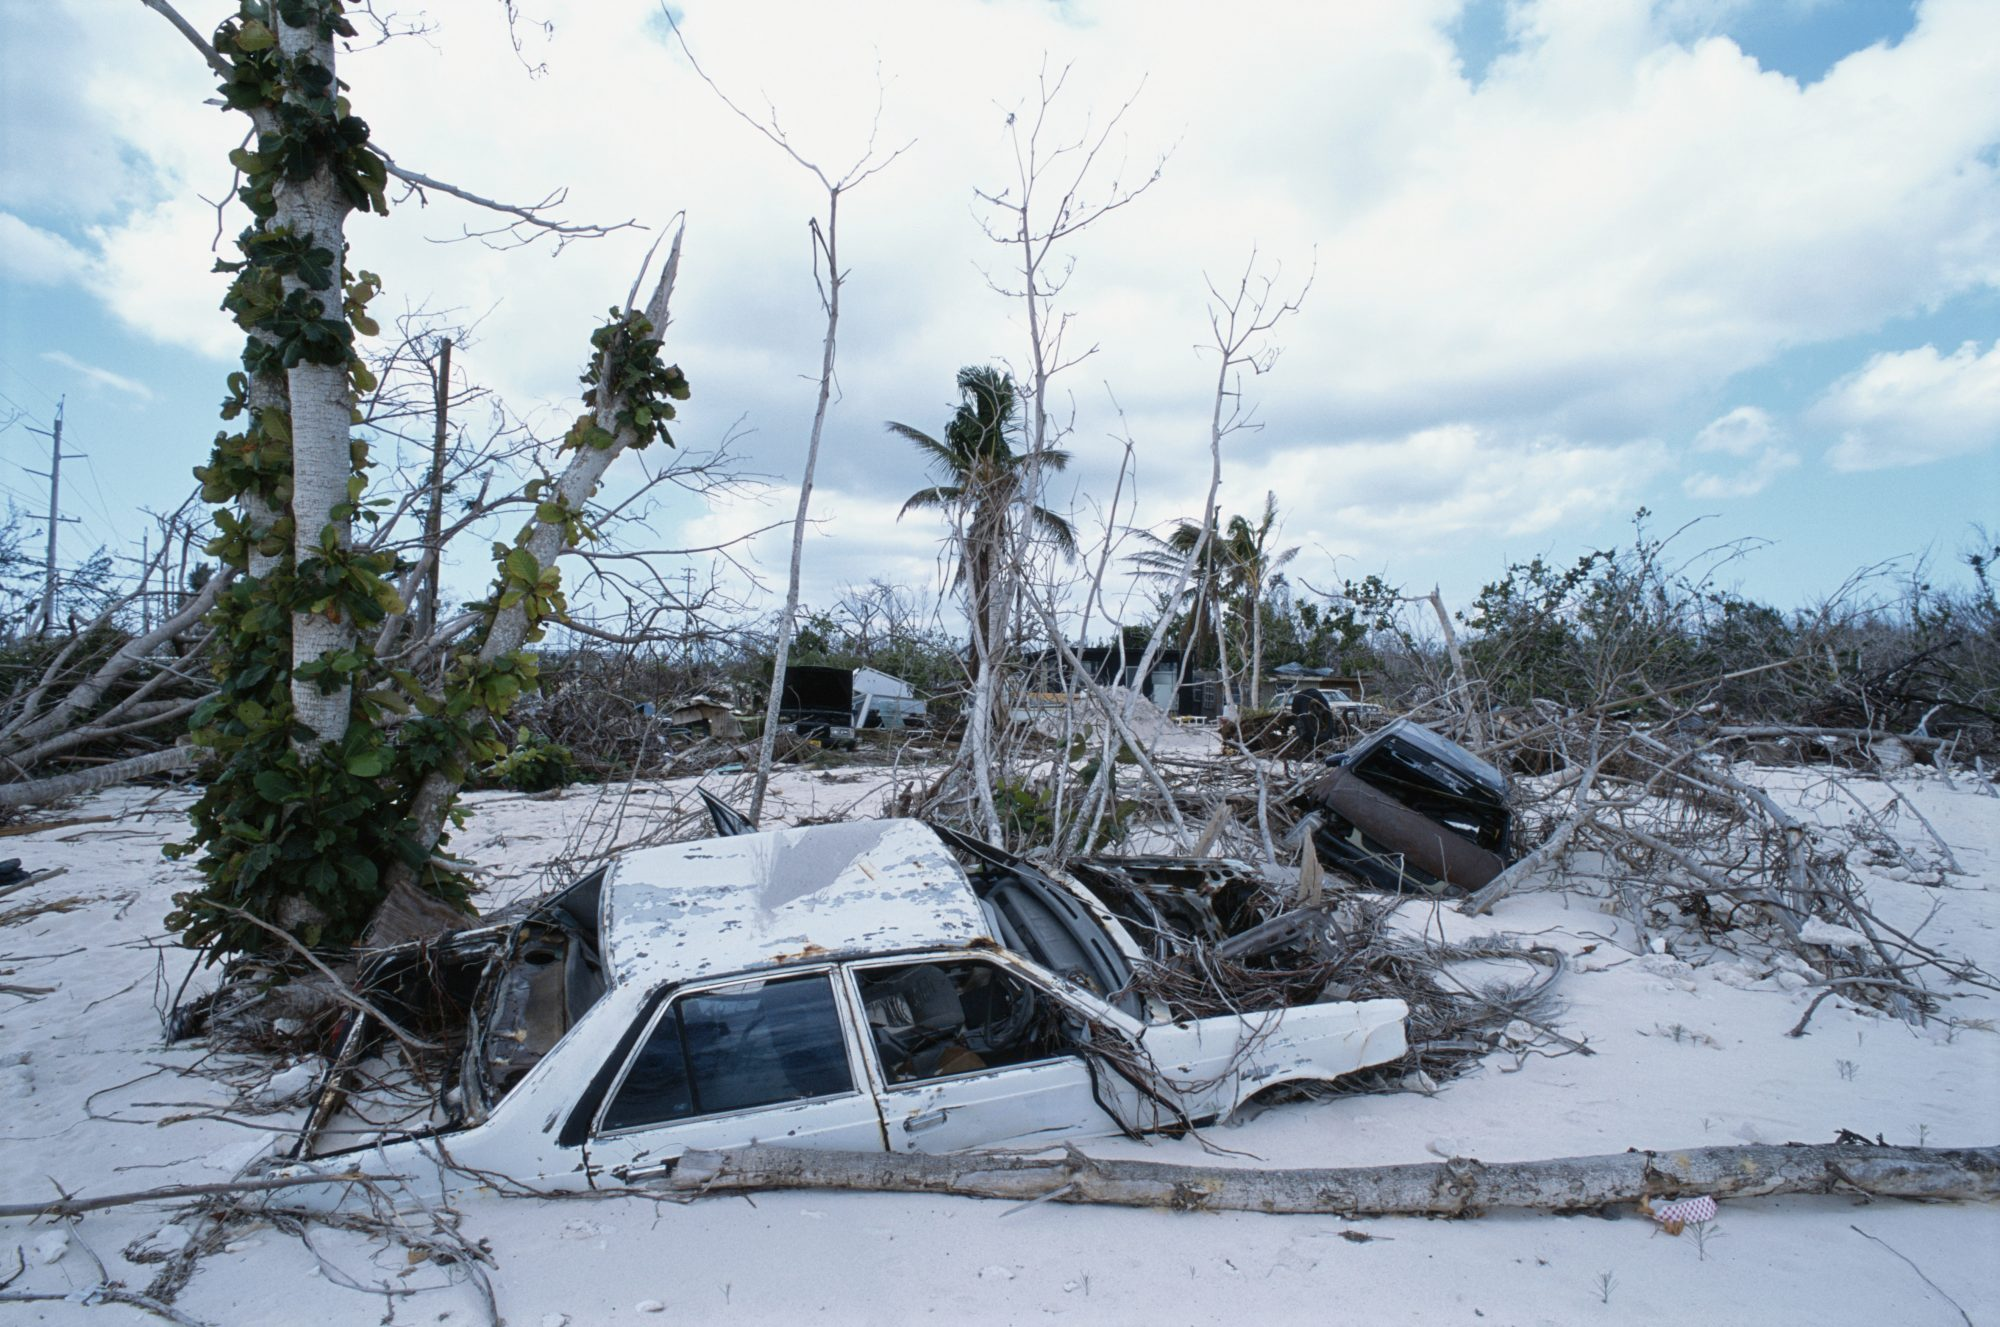 Hurricane Ivan was incredibly long-lived: It lasted from September 2, 2004, to September 26, when it finally dissipated. It reached Category 5 status while over the Caribbean Sea but weakened to Category 3 strength before hitting Gulf Shores, Alabama, and northwest Florida on September 16. Cost: $18.8 billion